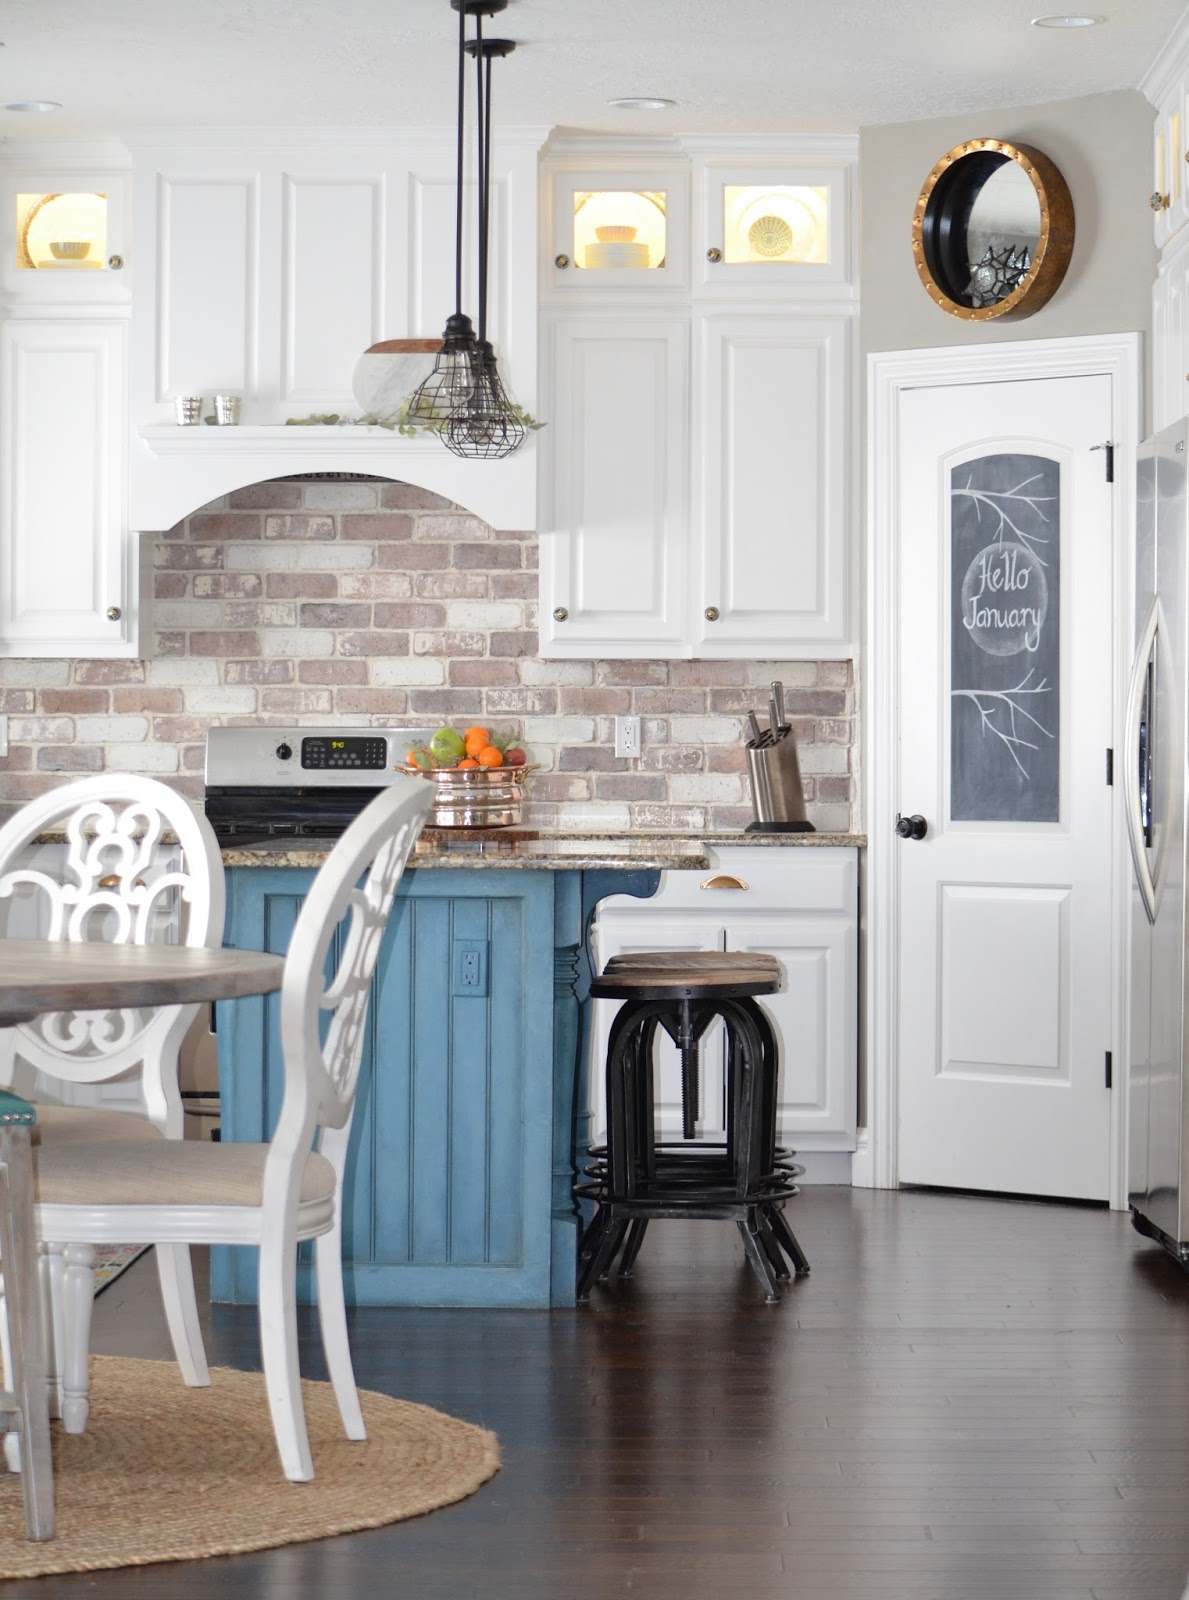 Diy brick veneer brick backsplash